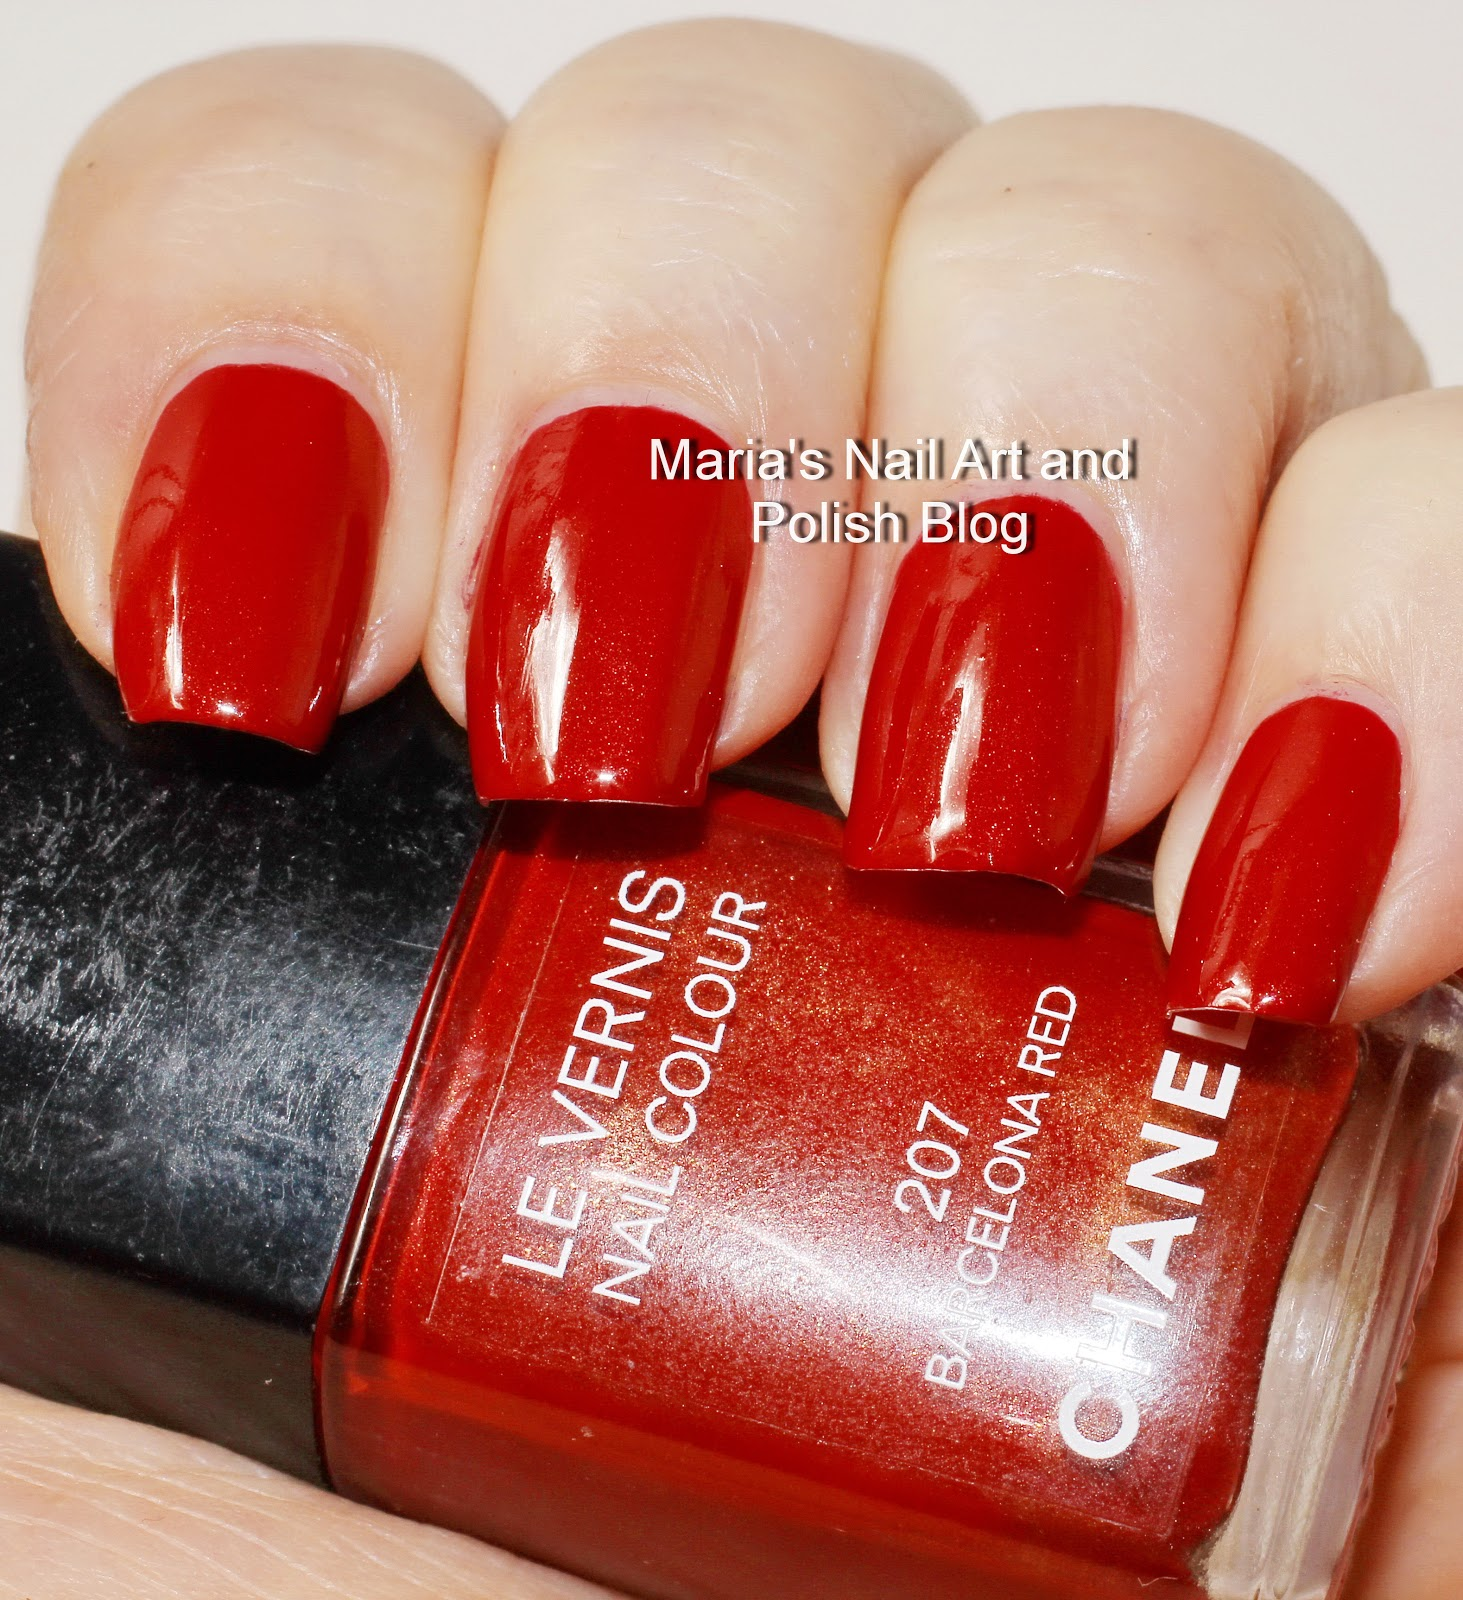 Marias Nail Art And Polish Blog Flushed With Stripes And: Marias Nail Art And Polish Blog: Chanel Barcelona Red 207